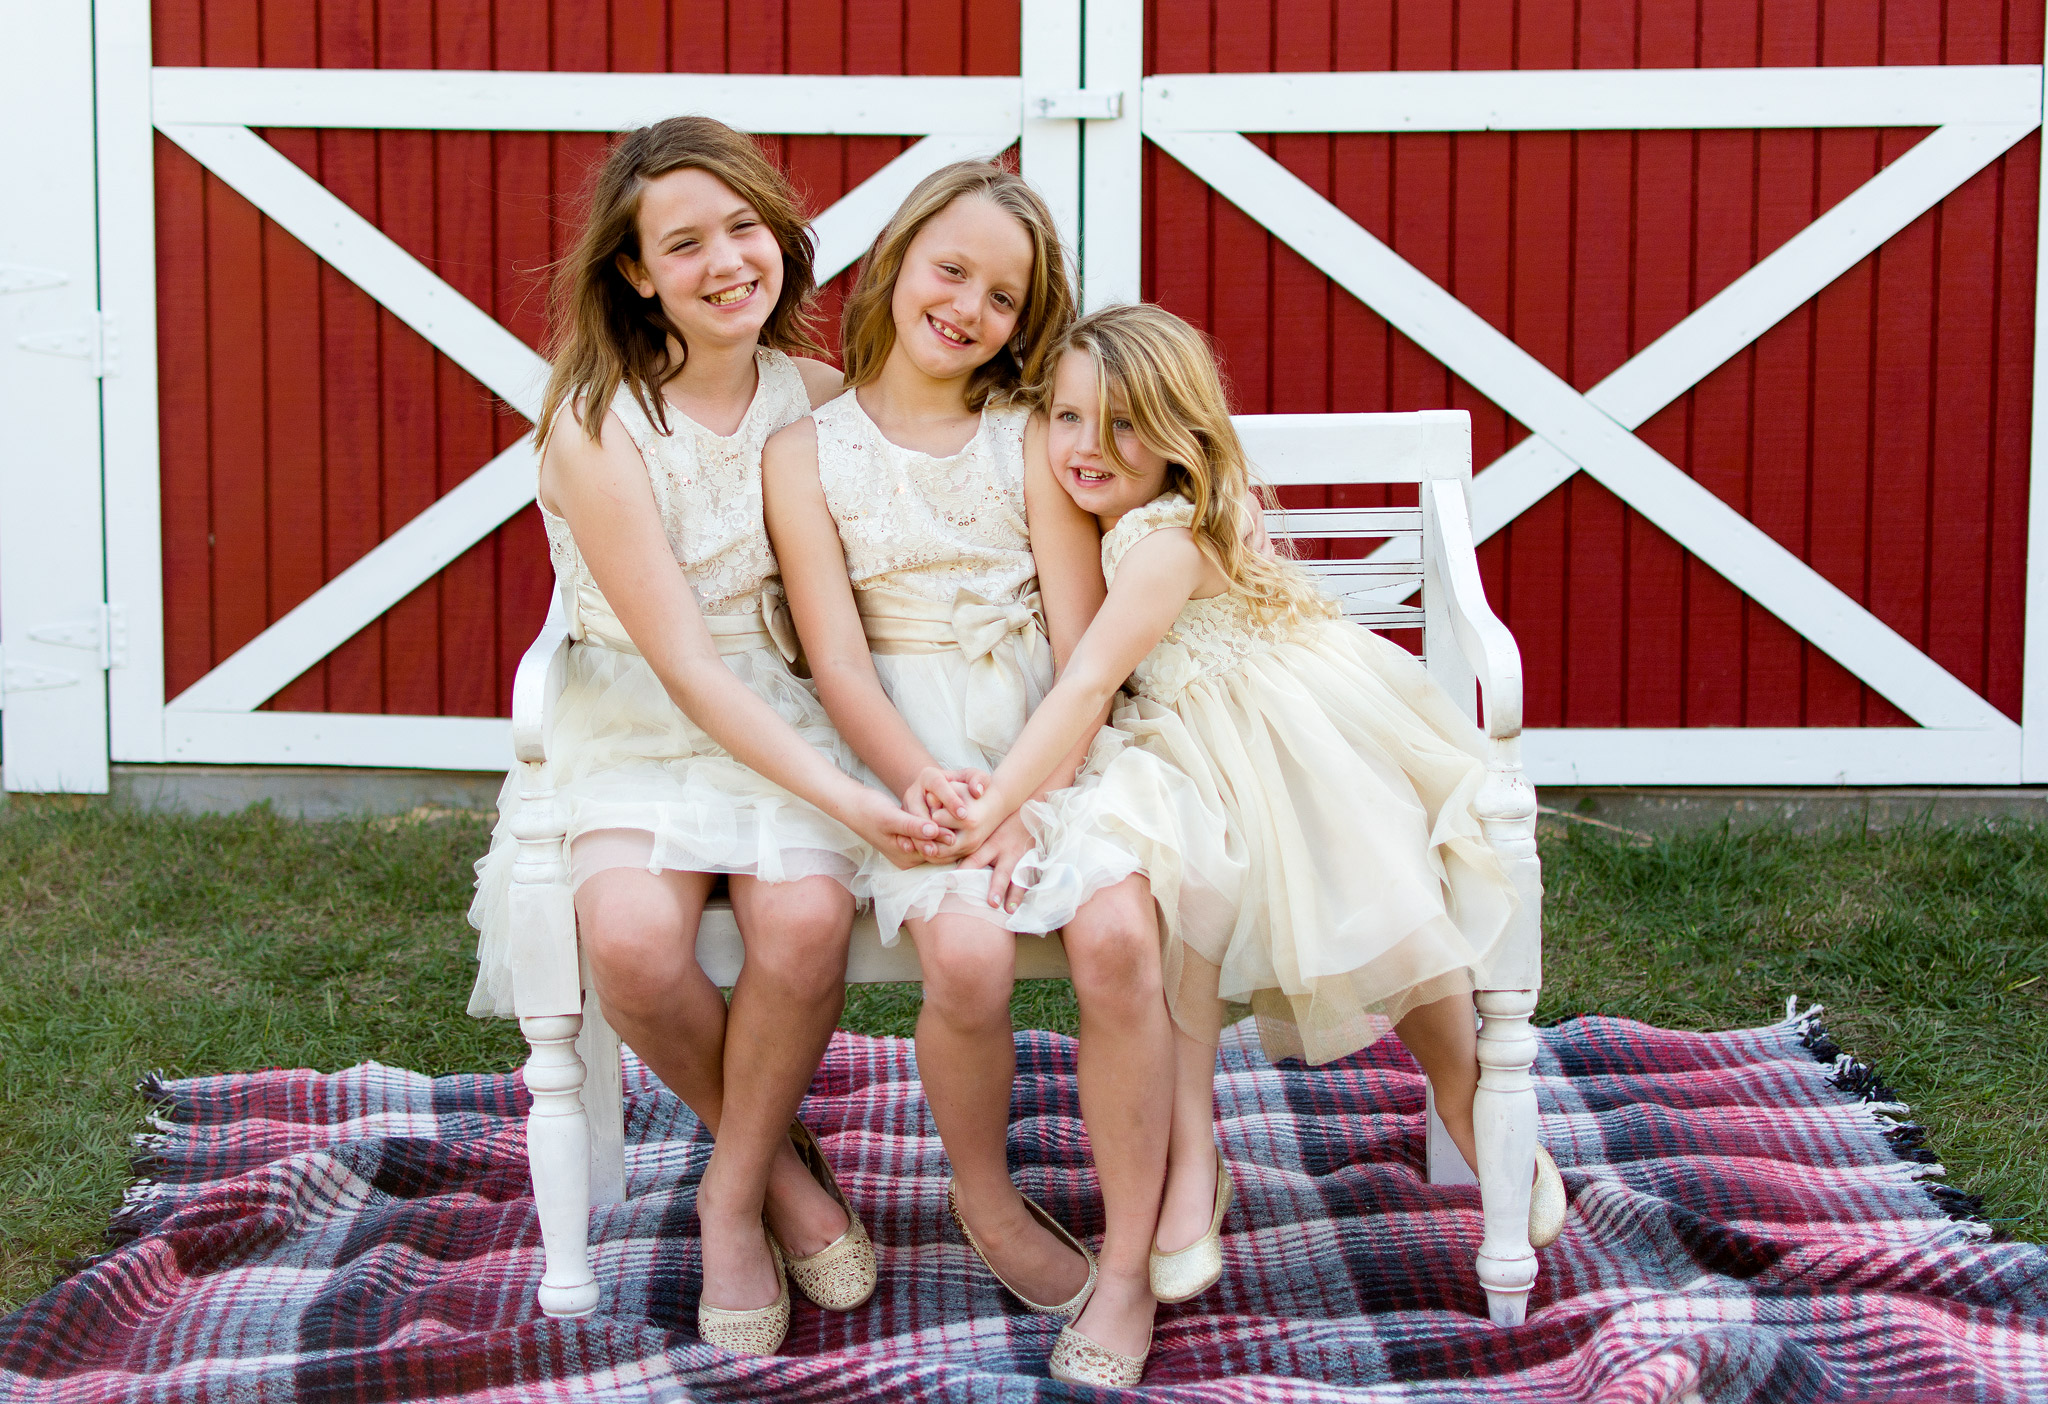 Adorable sister's hugging each other on a bench in front of barn in Dade city, Florida taken by Carlie Chew Photography